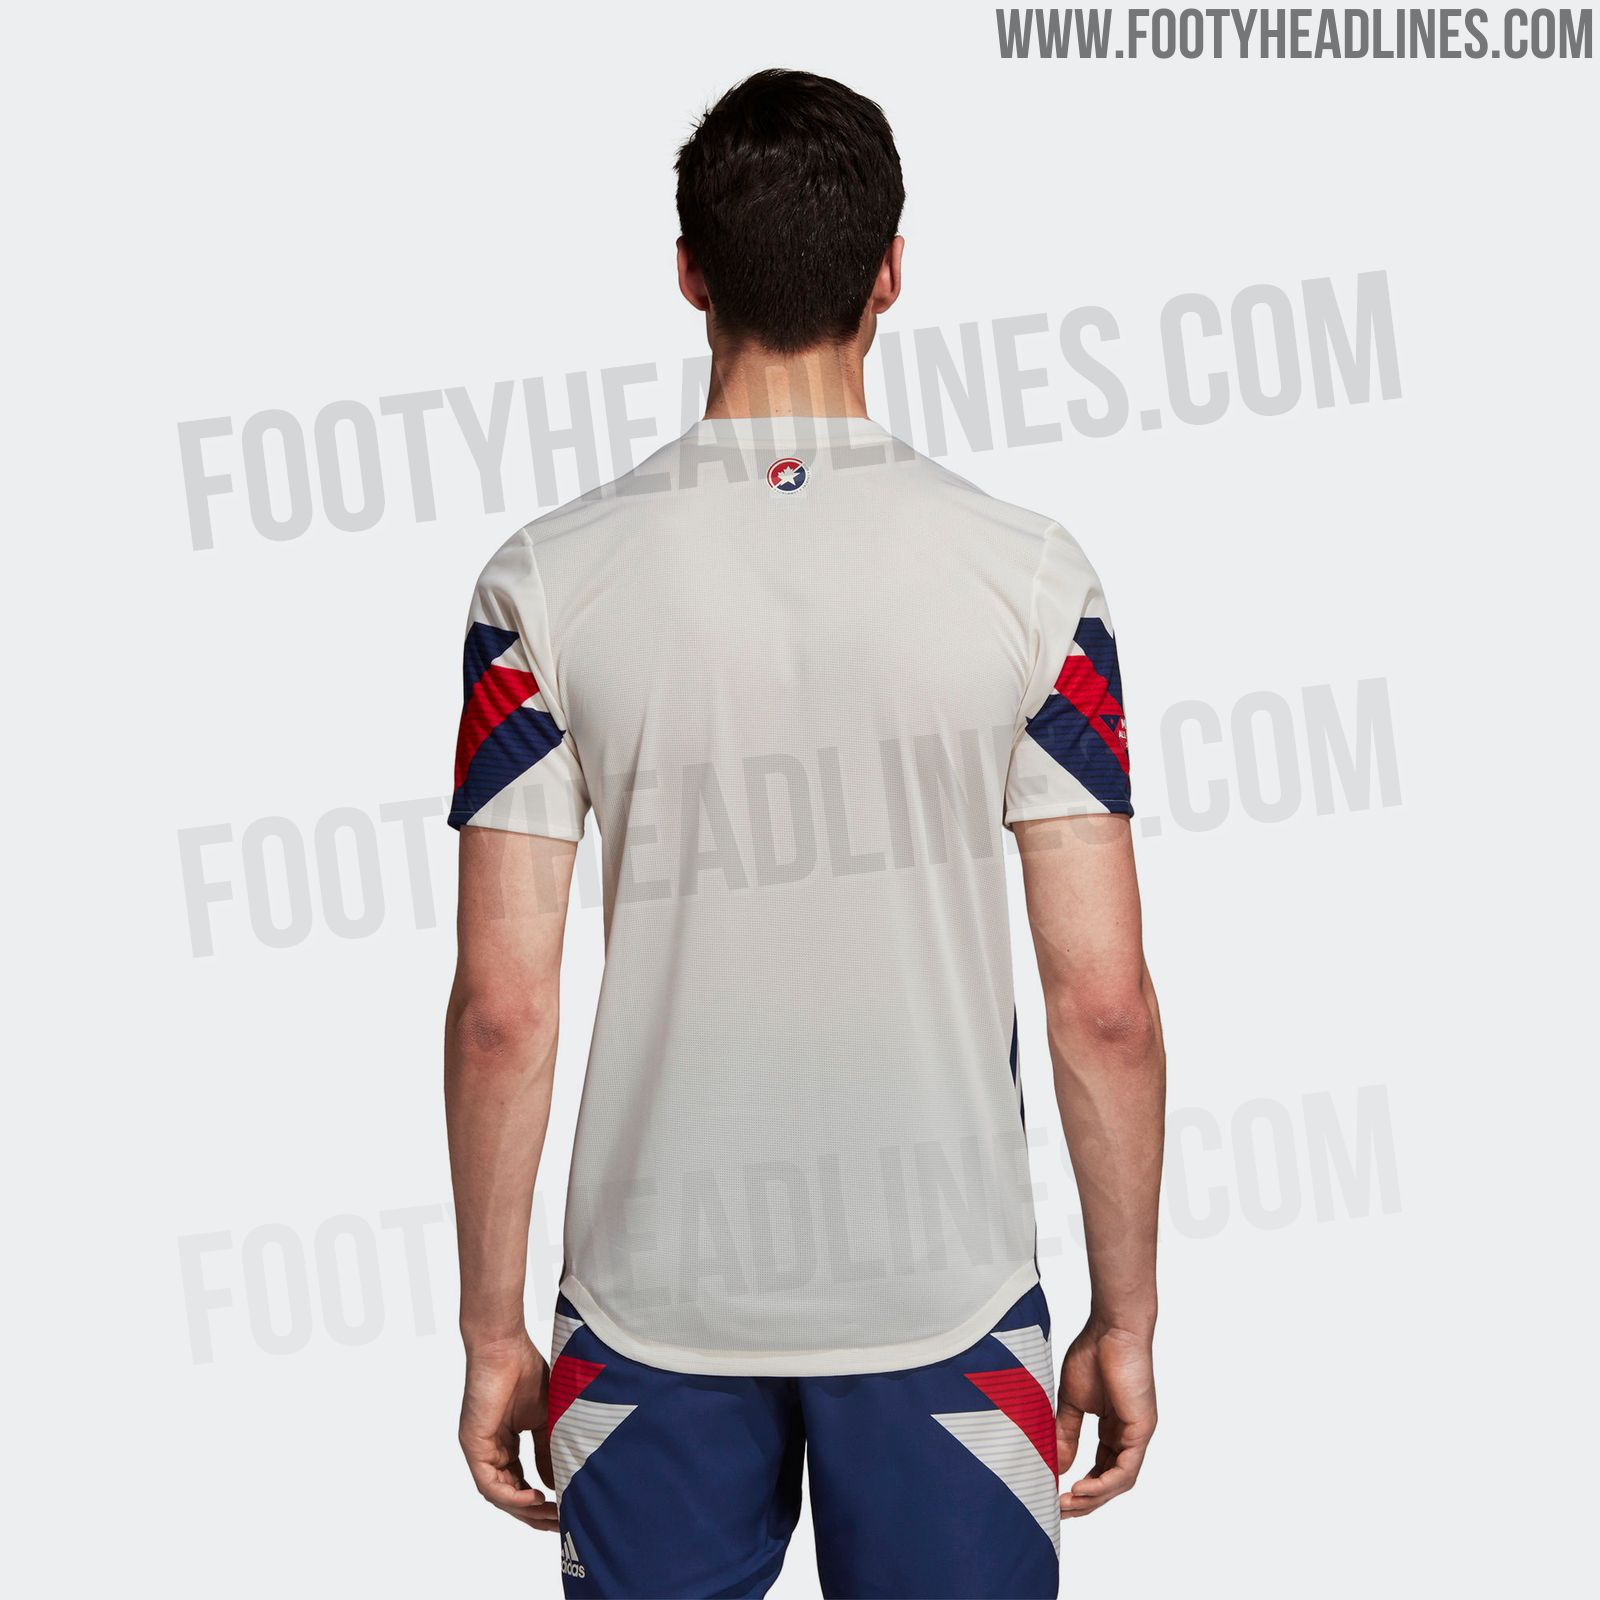 88a20348b57 The shorts of the Adidas MLS All-Star 2018 kit are navy with classic bold  1990s white   red Three Stripes